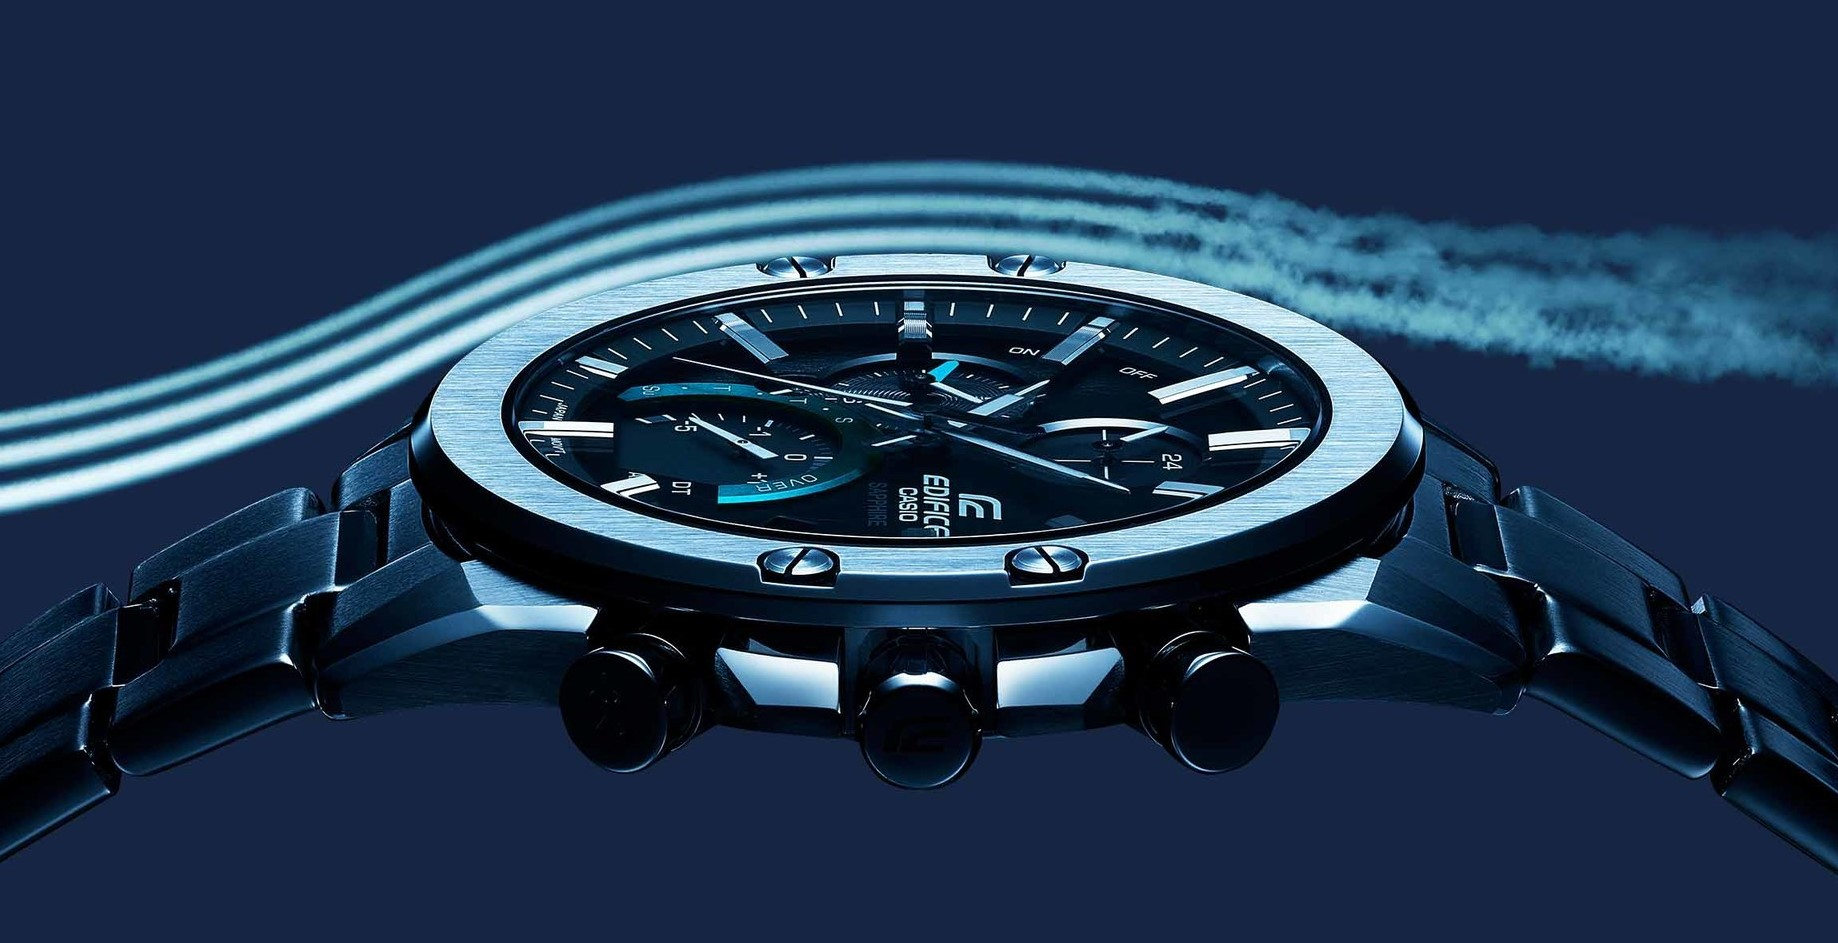 The slimmest new Casio EDIFICE watch is also a Bluetooth device